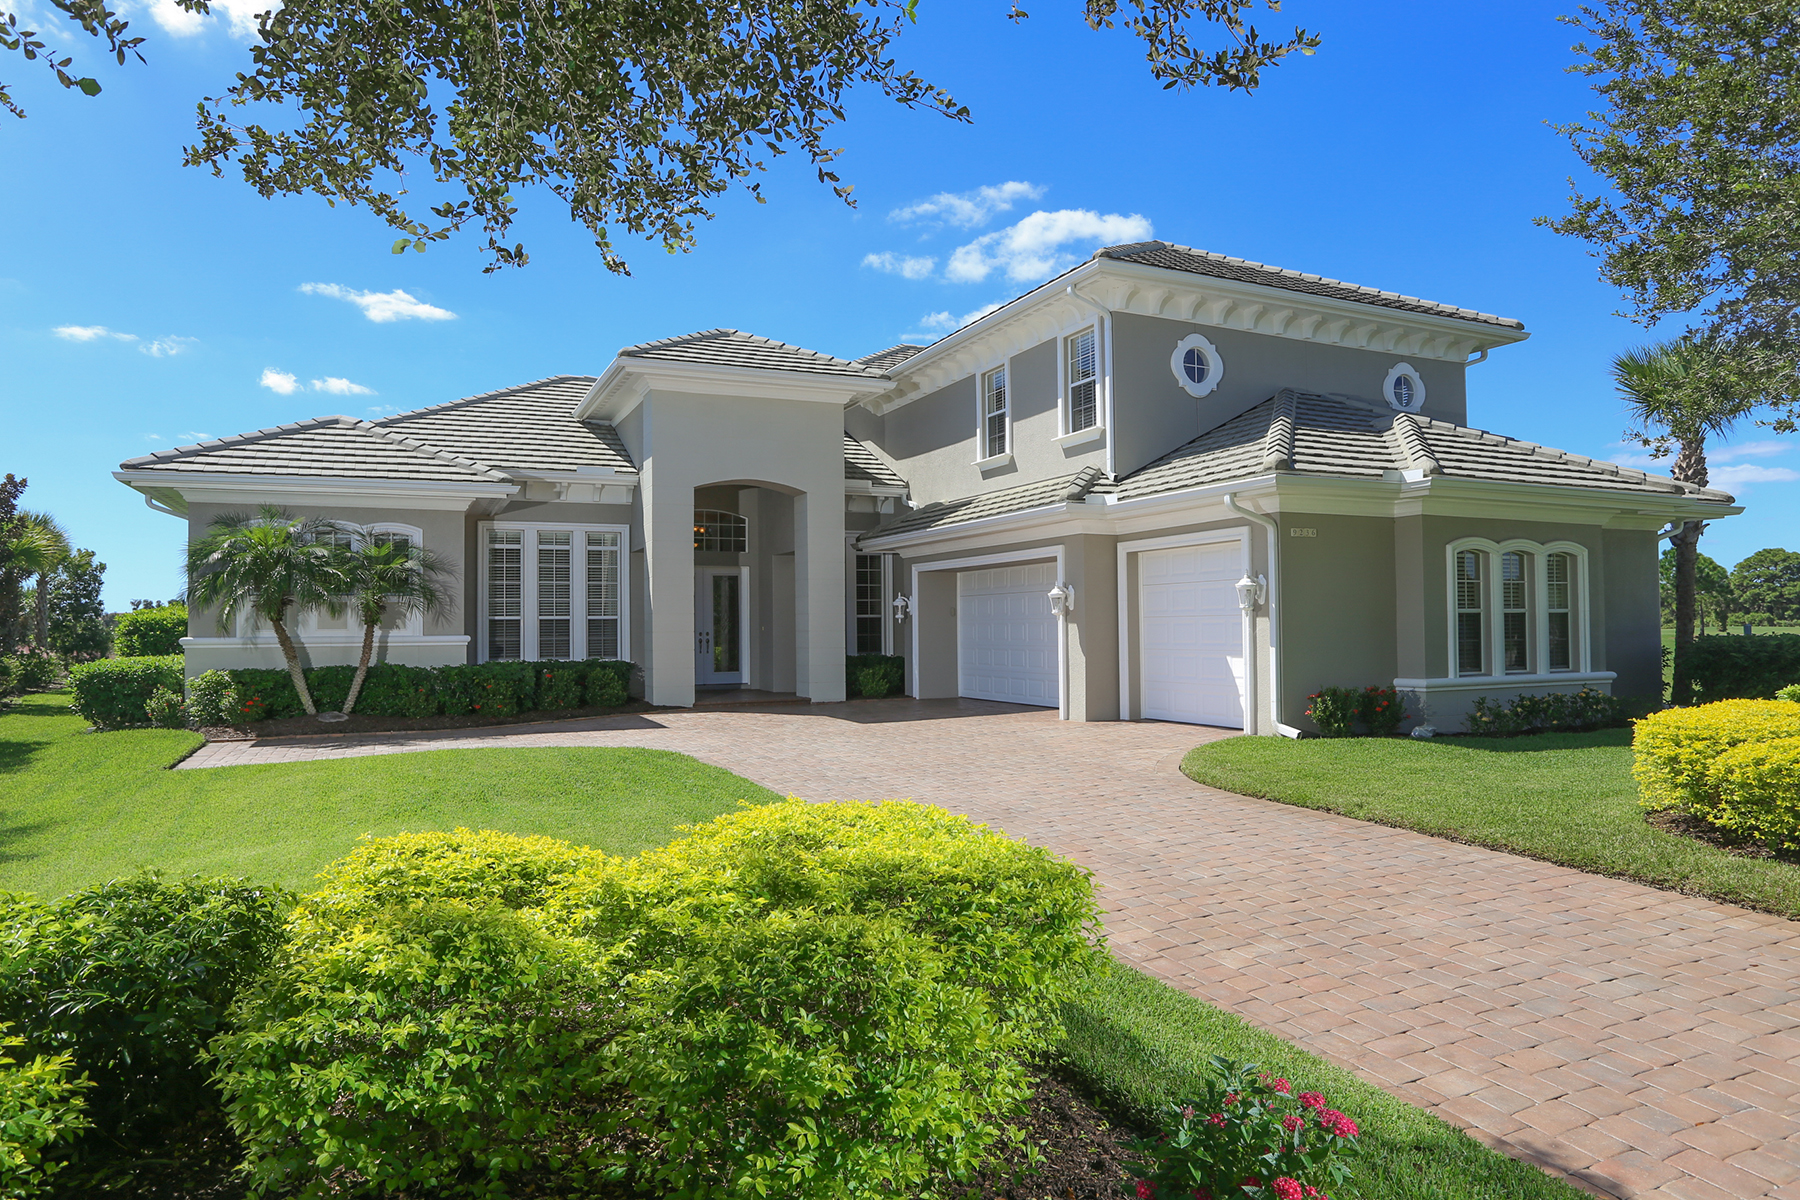 Single Family Home for Sale at THE FOUNDERS CLUB 9236 Mcdaniel Ln Sarasota, Florida 34240 United States